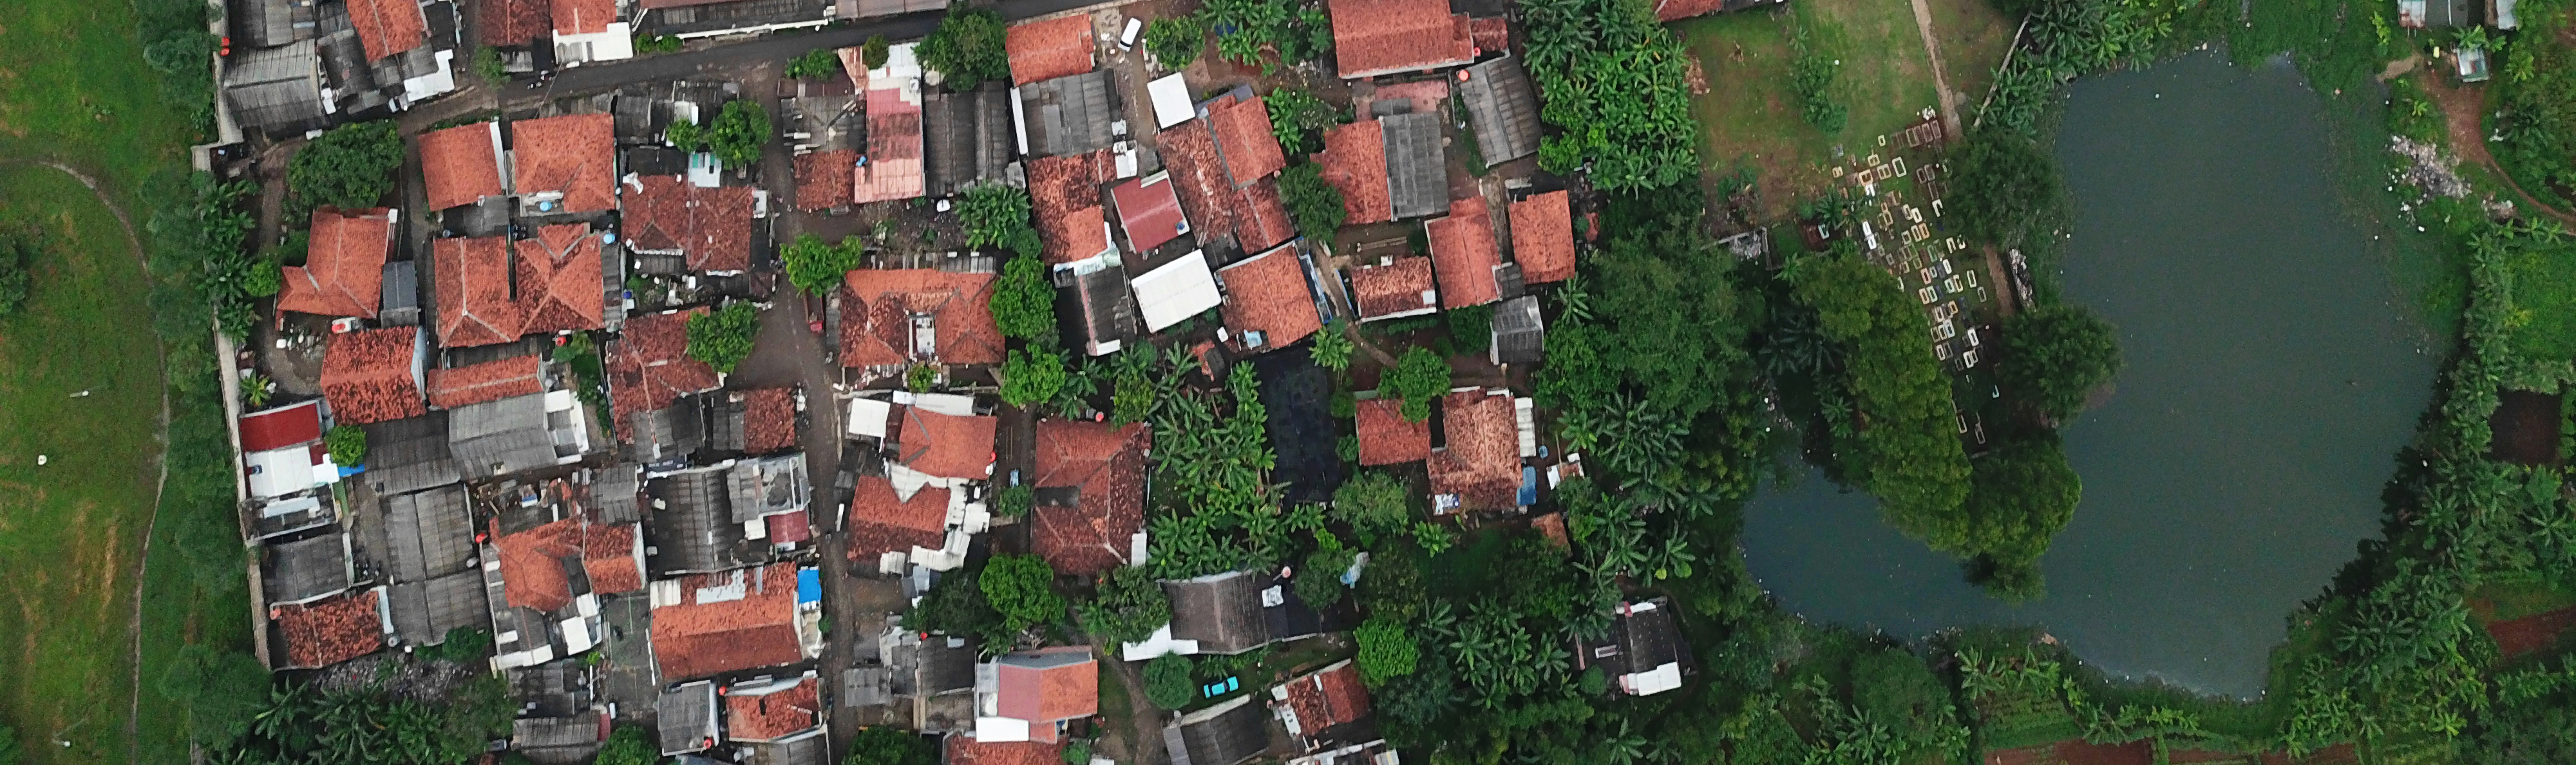 Aerial shot of houses in Indonesia.